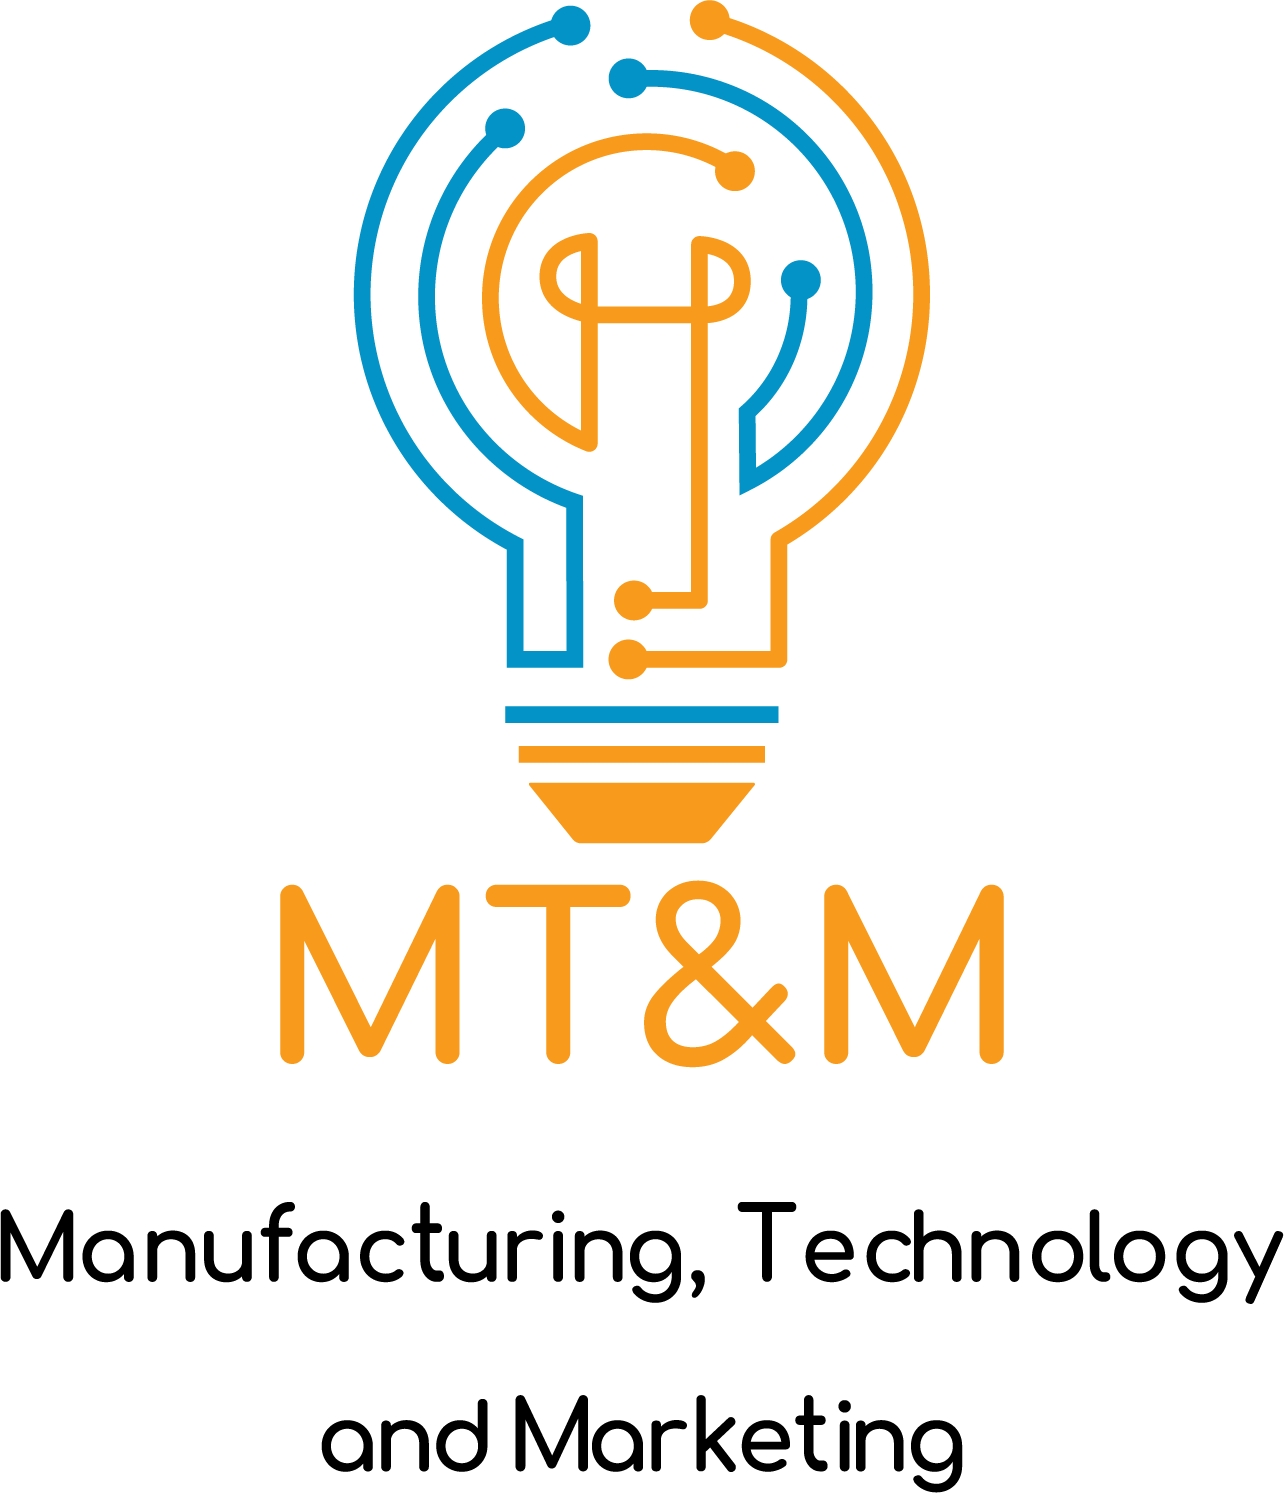 Manufacturing, Technology and Marketing